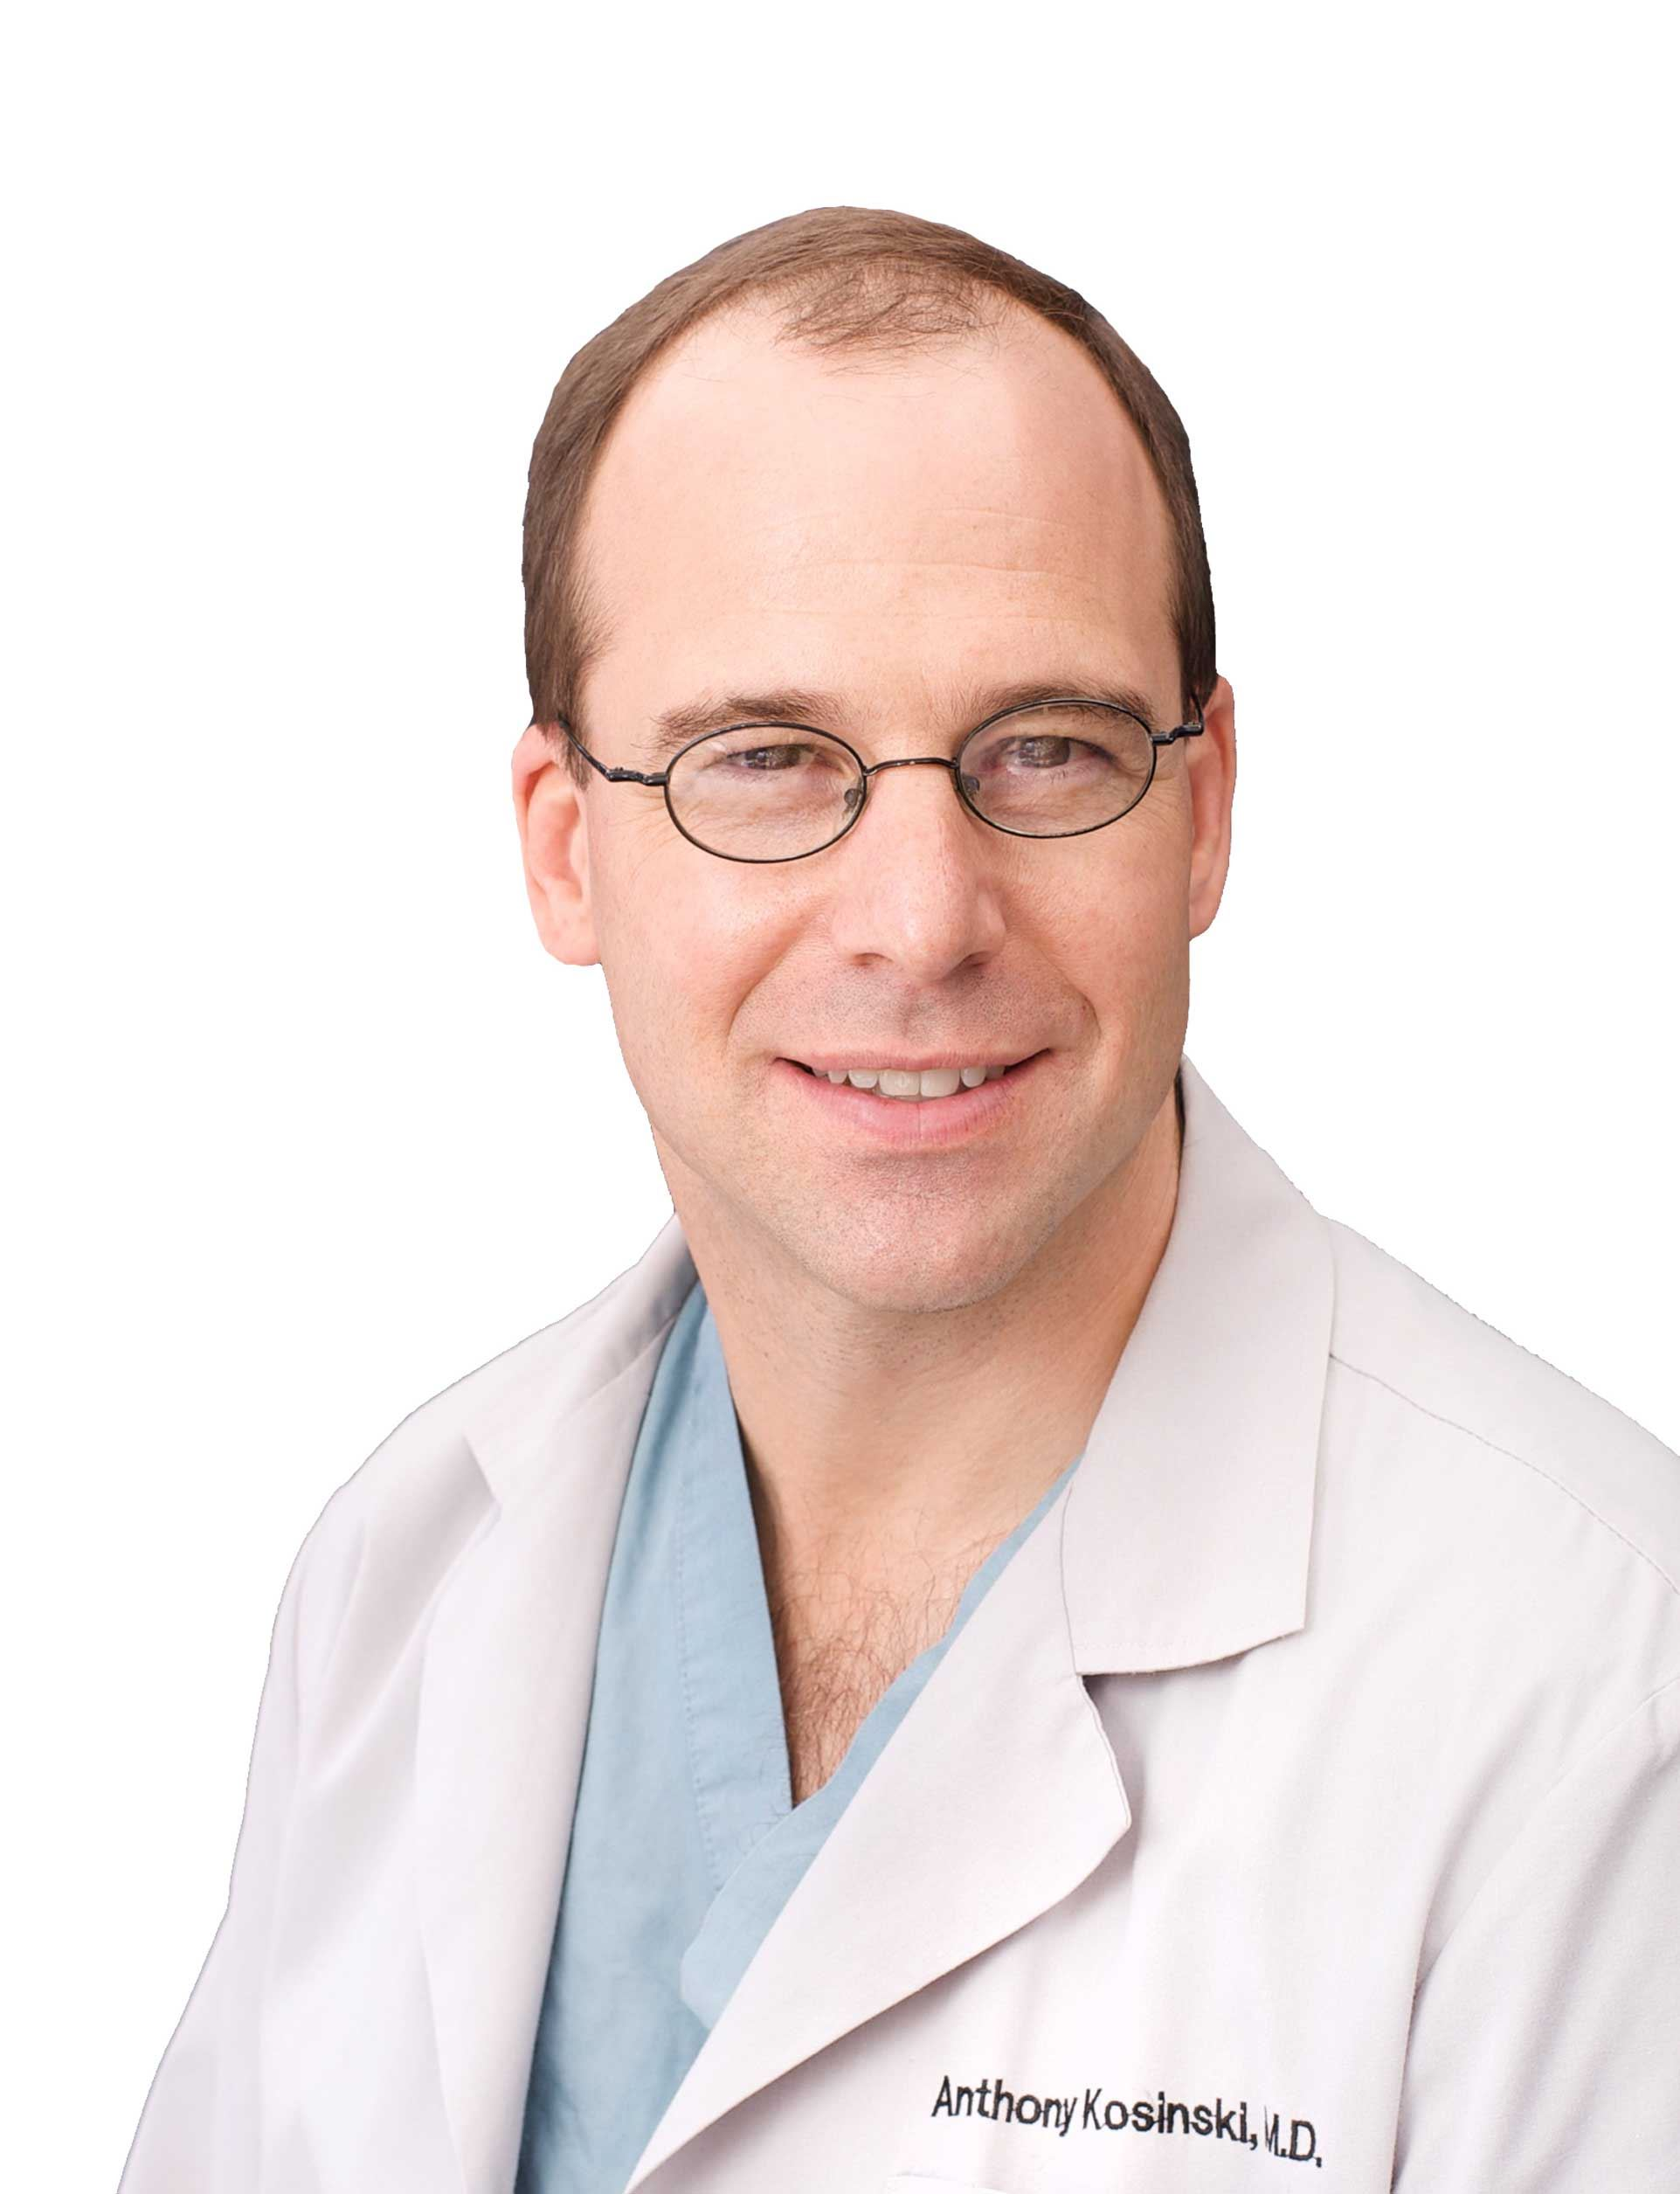 Anthony Kosinski, MD